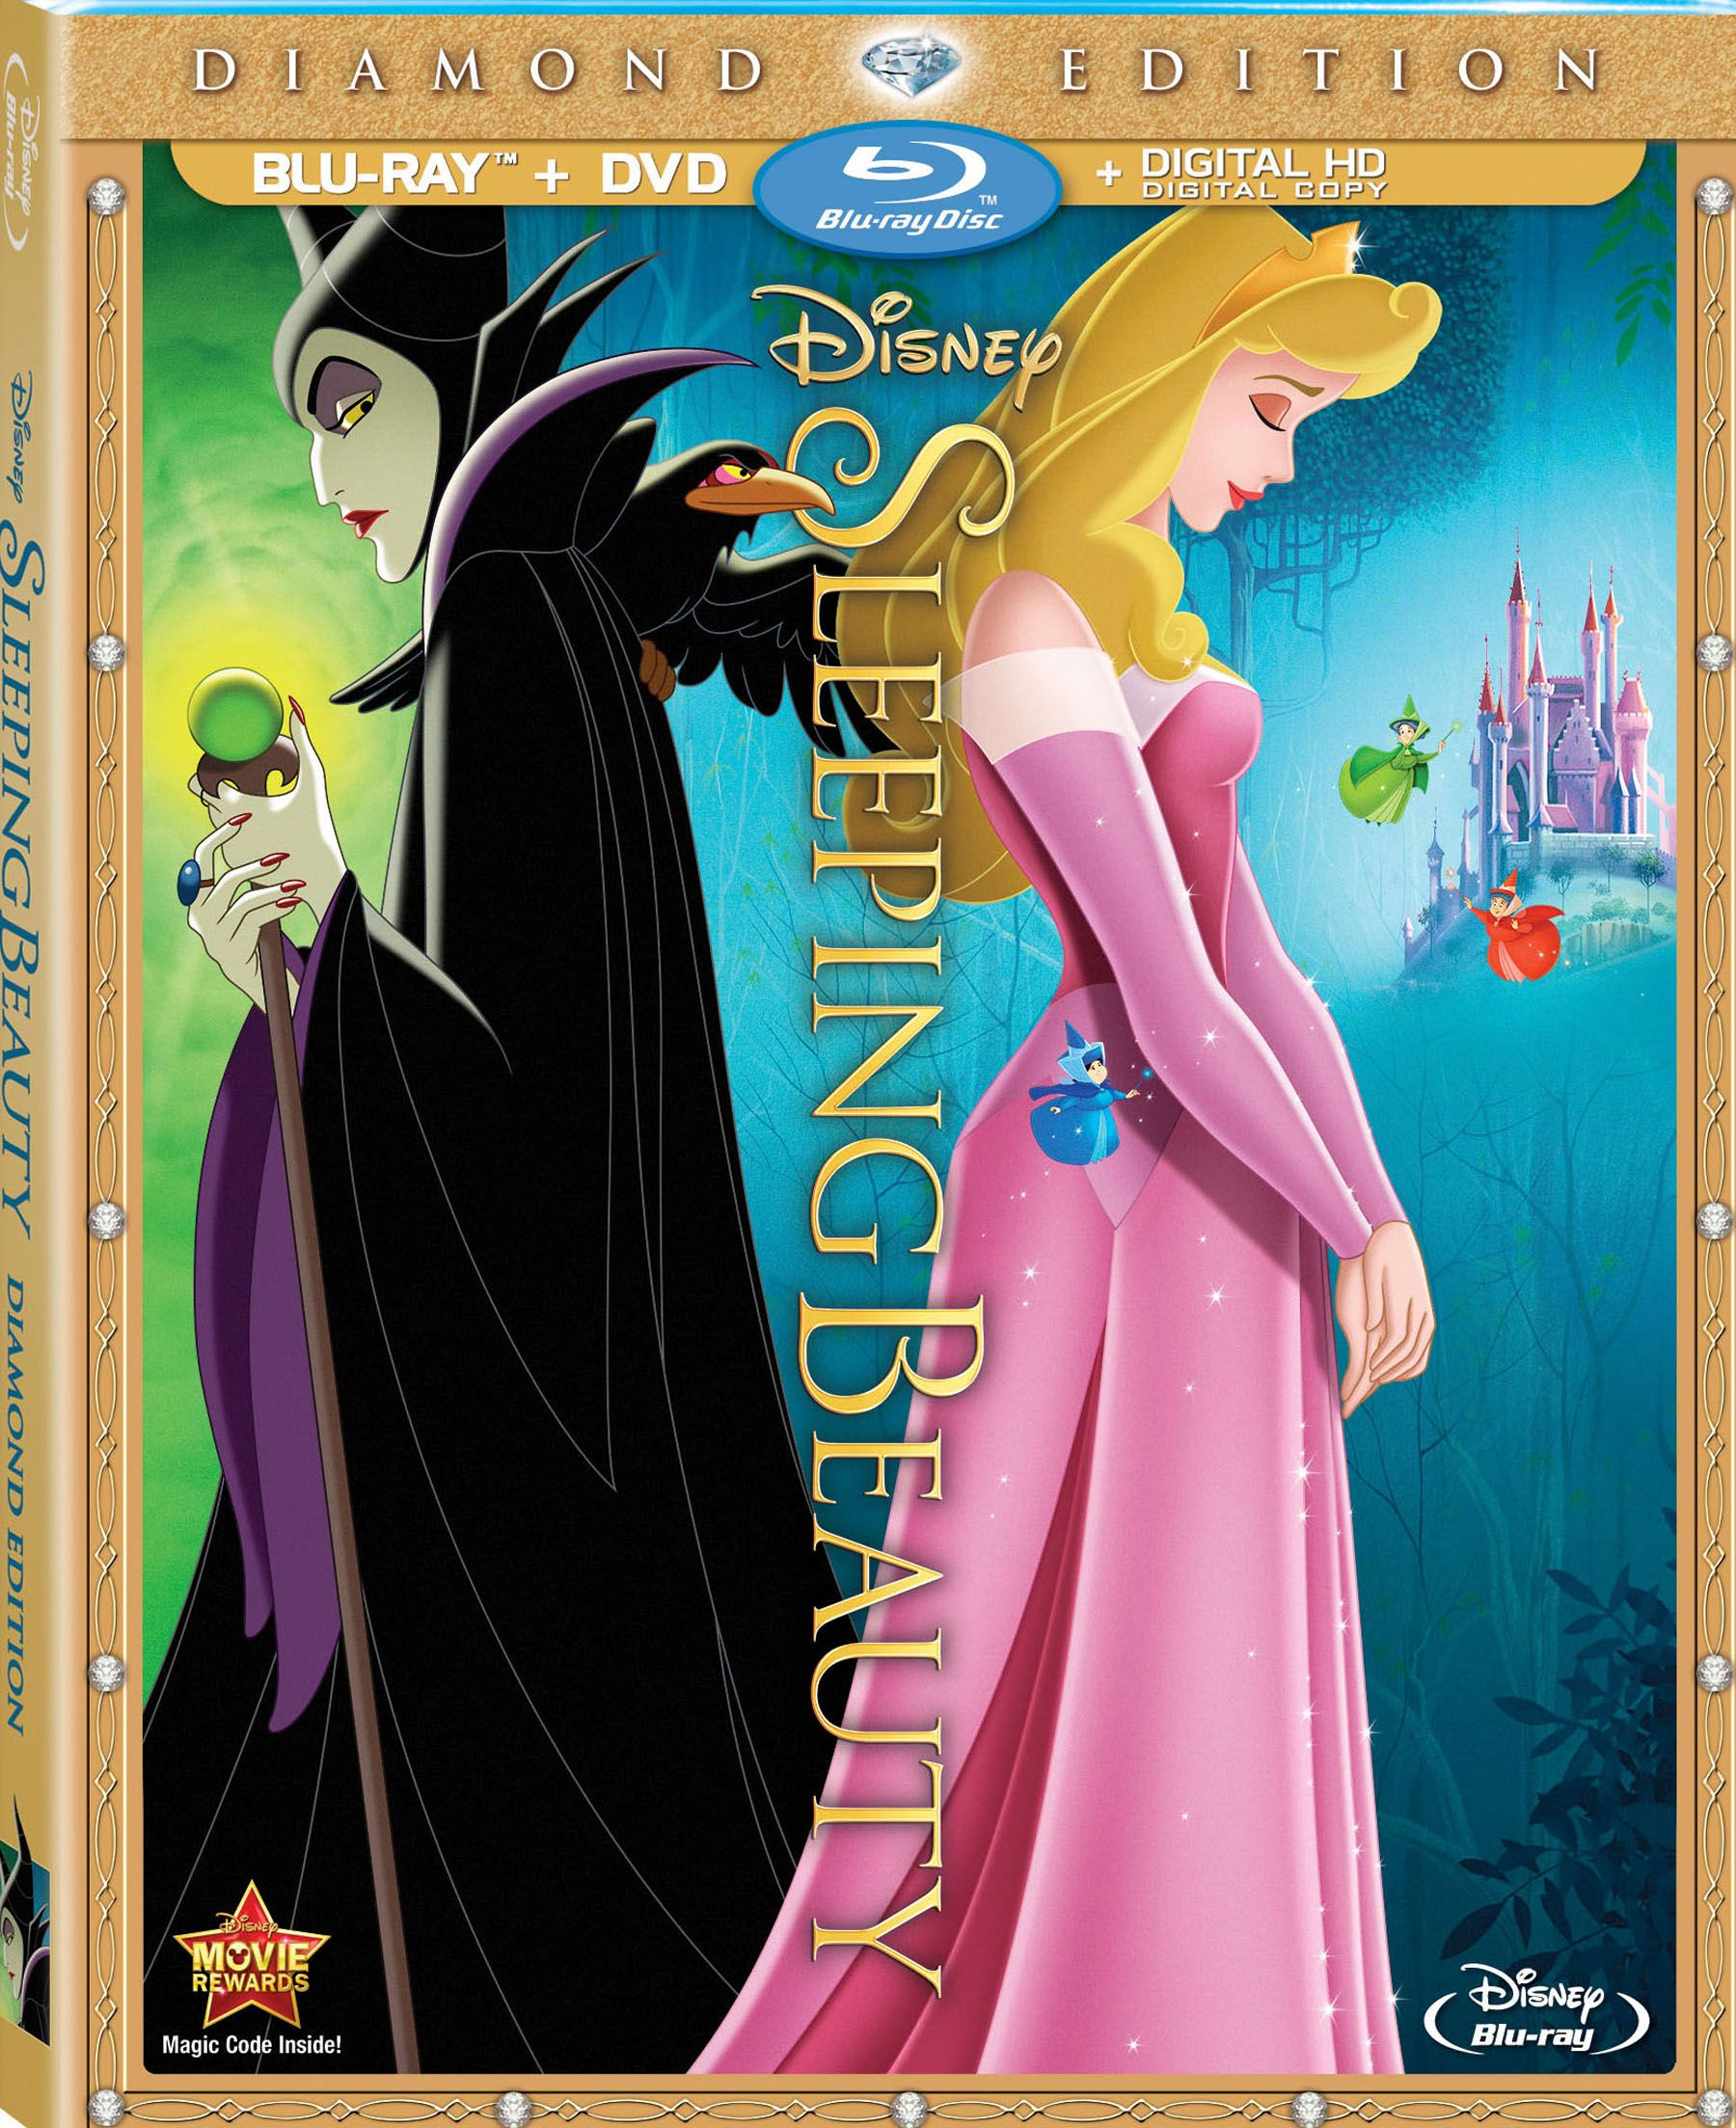 Edition Diamond: 12 Things To Know About Disney's 'Sleeping Beauty' And The